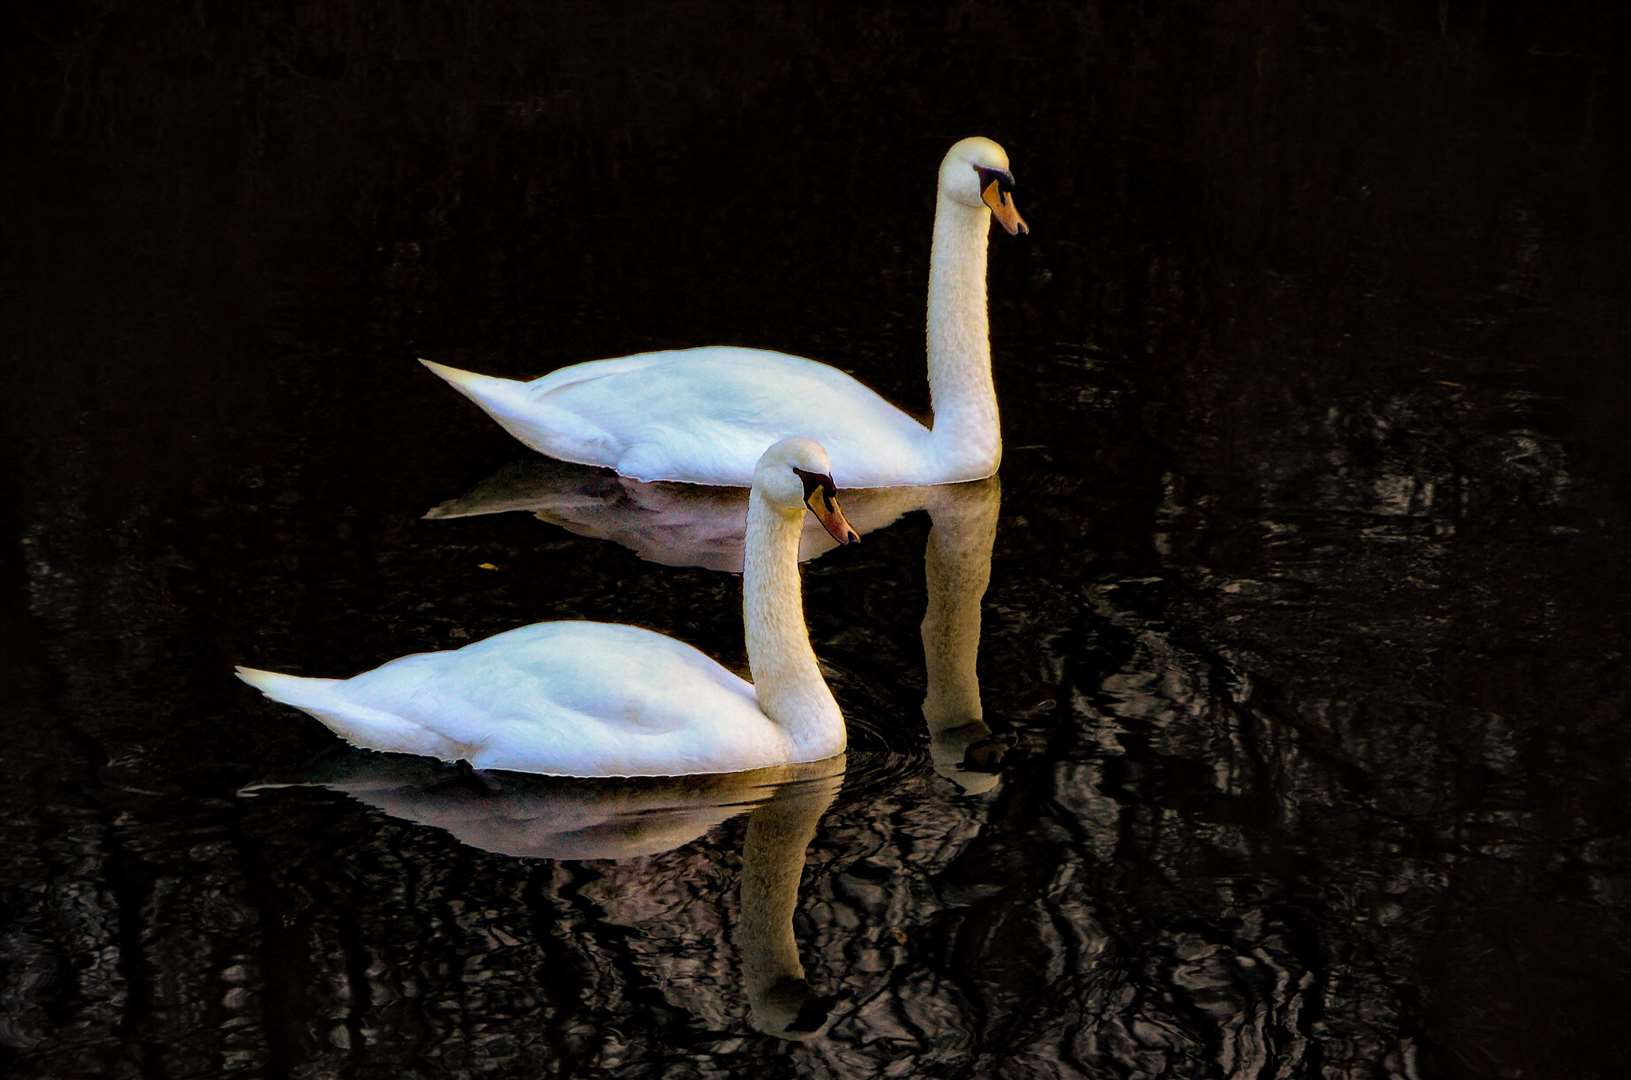 Lara Russell had her camera to hand as these two swans swam gracefully past along the River Stour